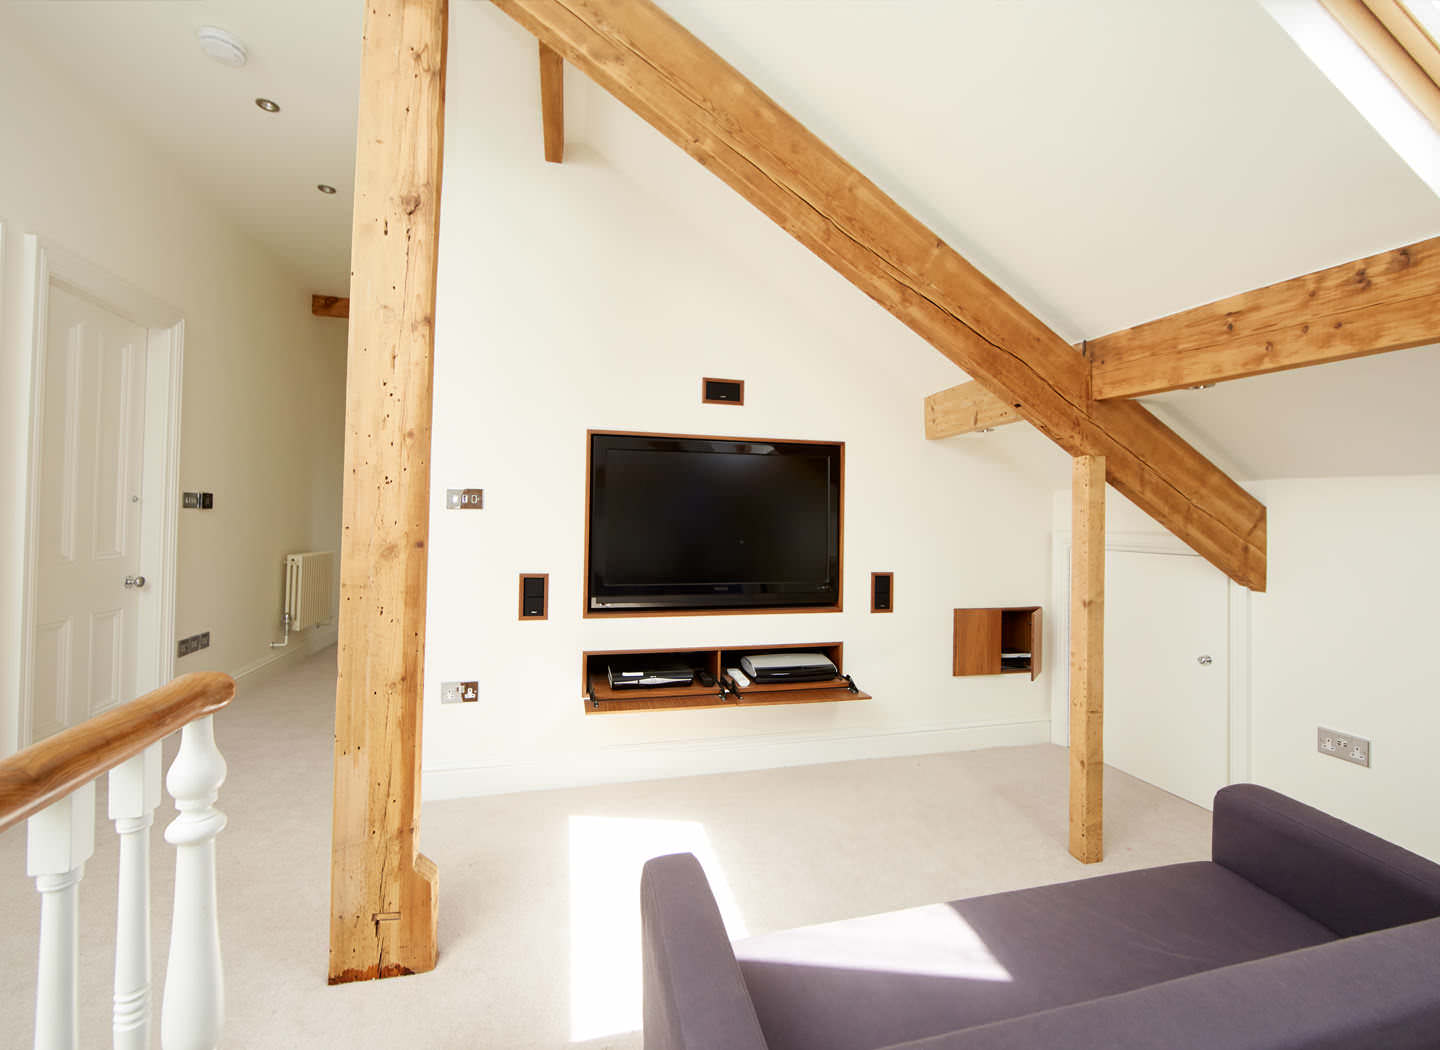 Case study showing entertainment room in loft conversion